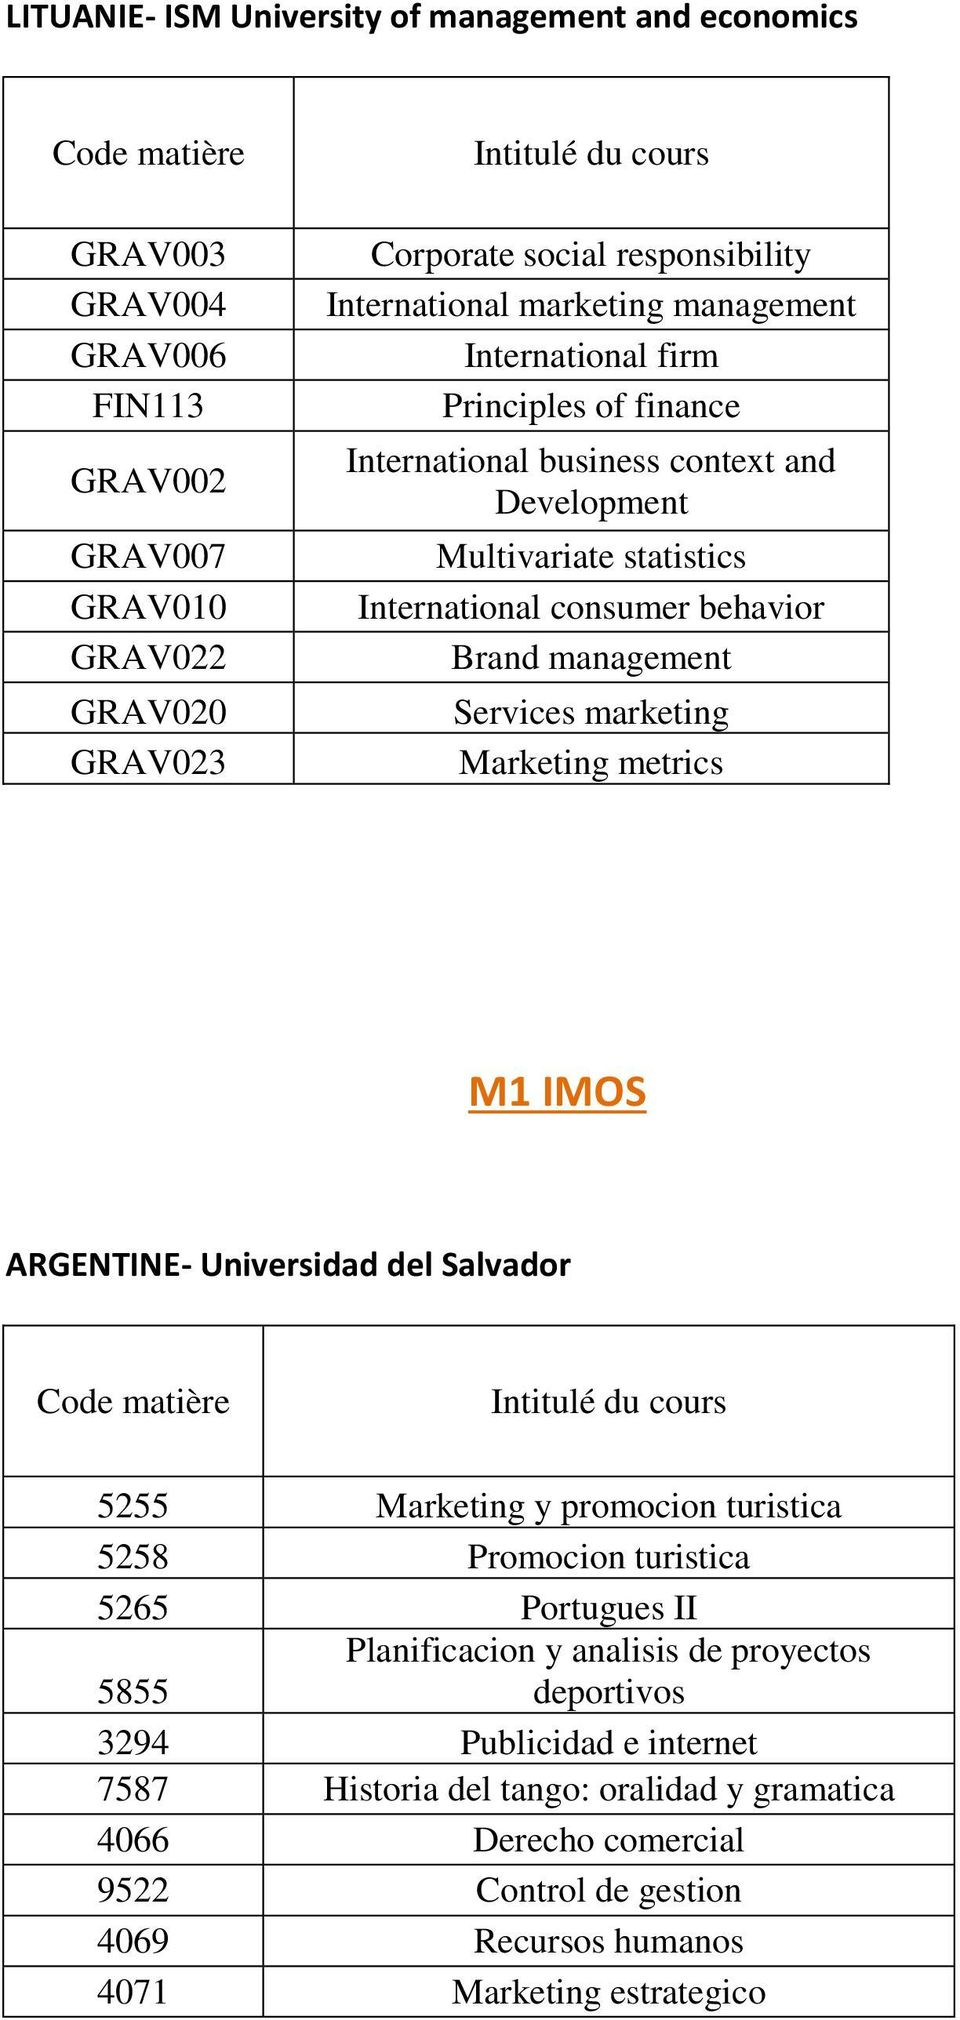 Services marketing Marketing metrics M1 IMOS ARGENTINE- Universidad del Salvador 5255 Marketing y promocion turistica 5258 Promocion turistica 5265 Portugues II Planificacion y analisis